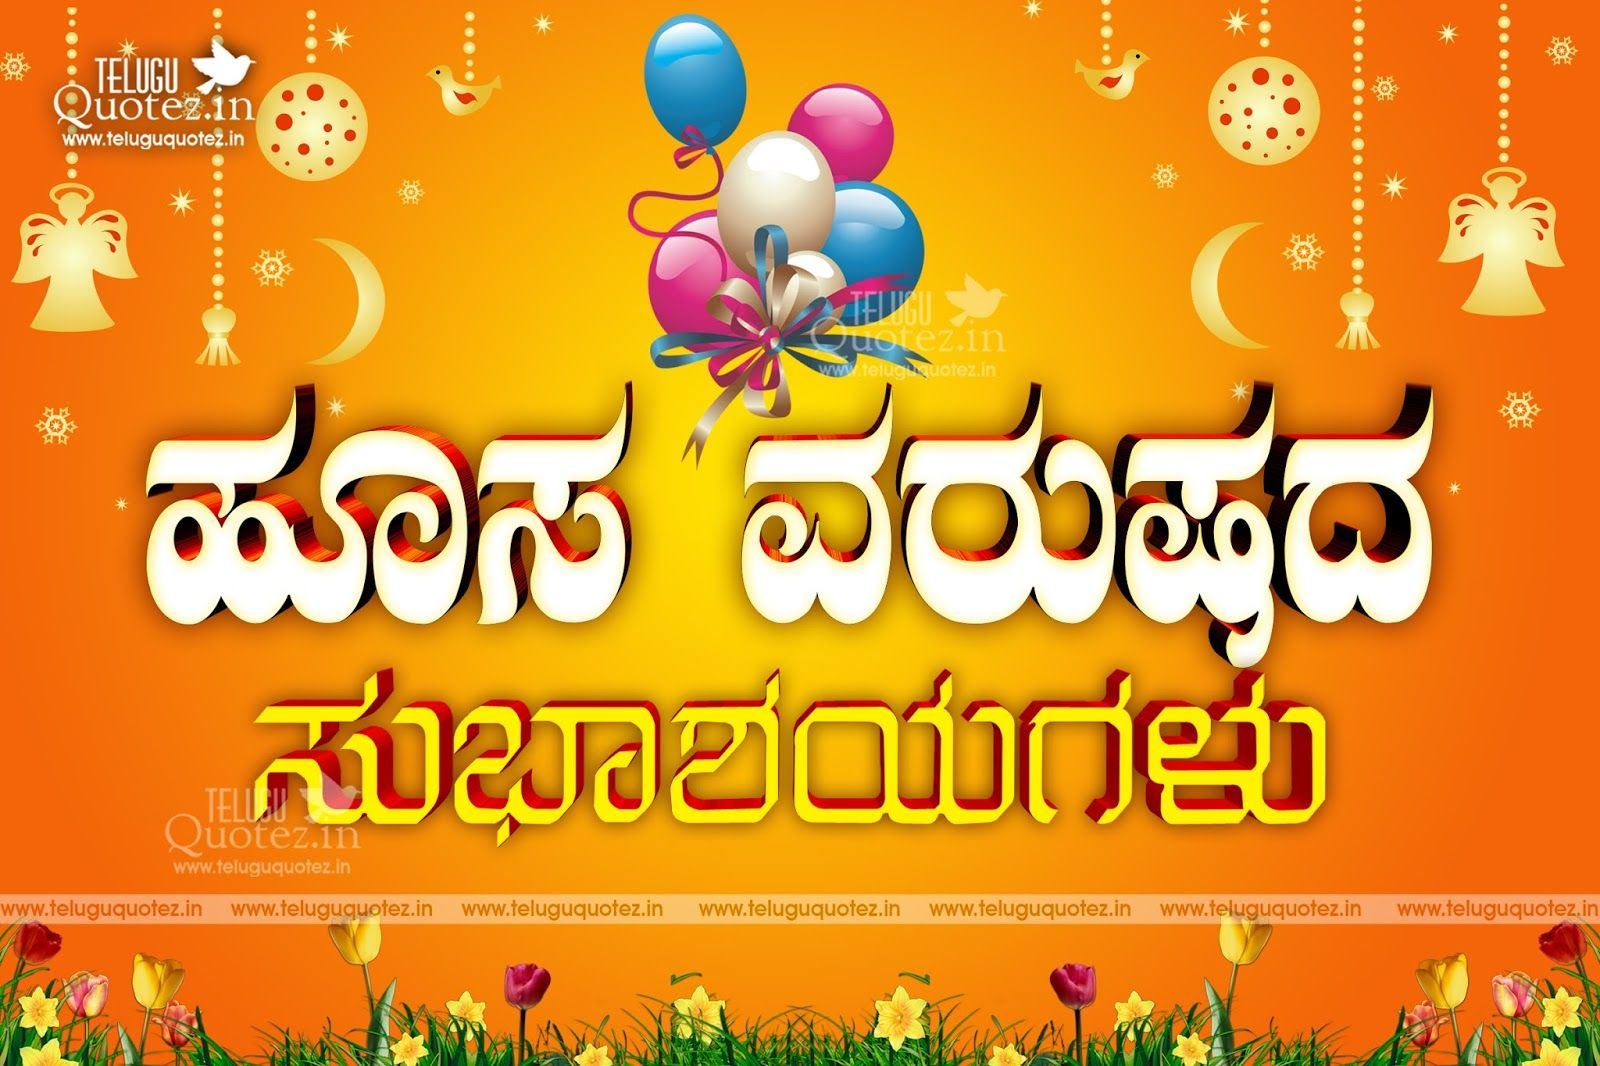 10 Happy Married Life Quotes In Kannada | Best life quotes ...